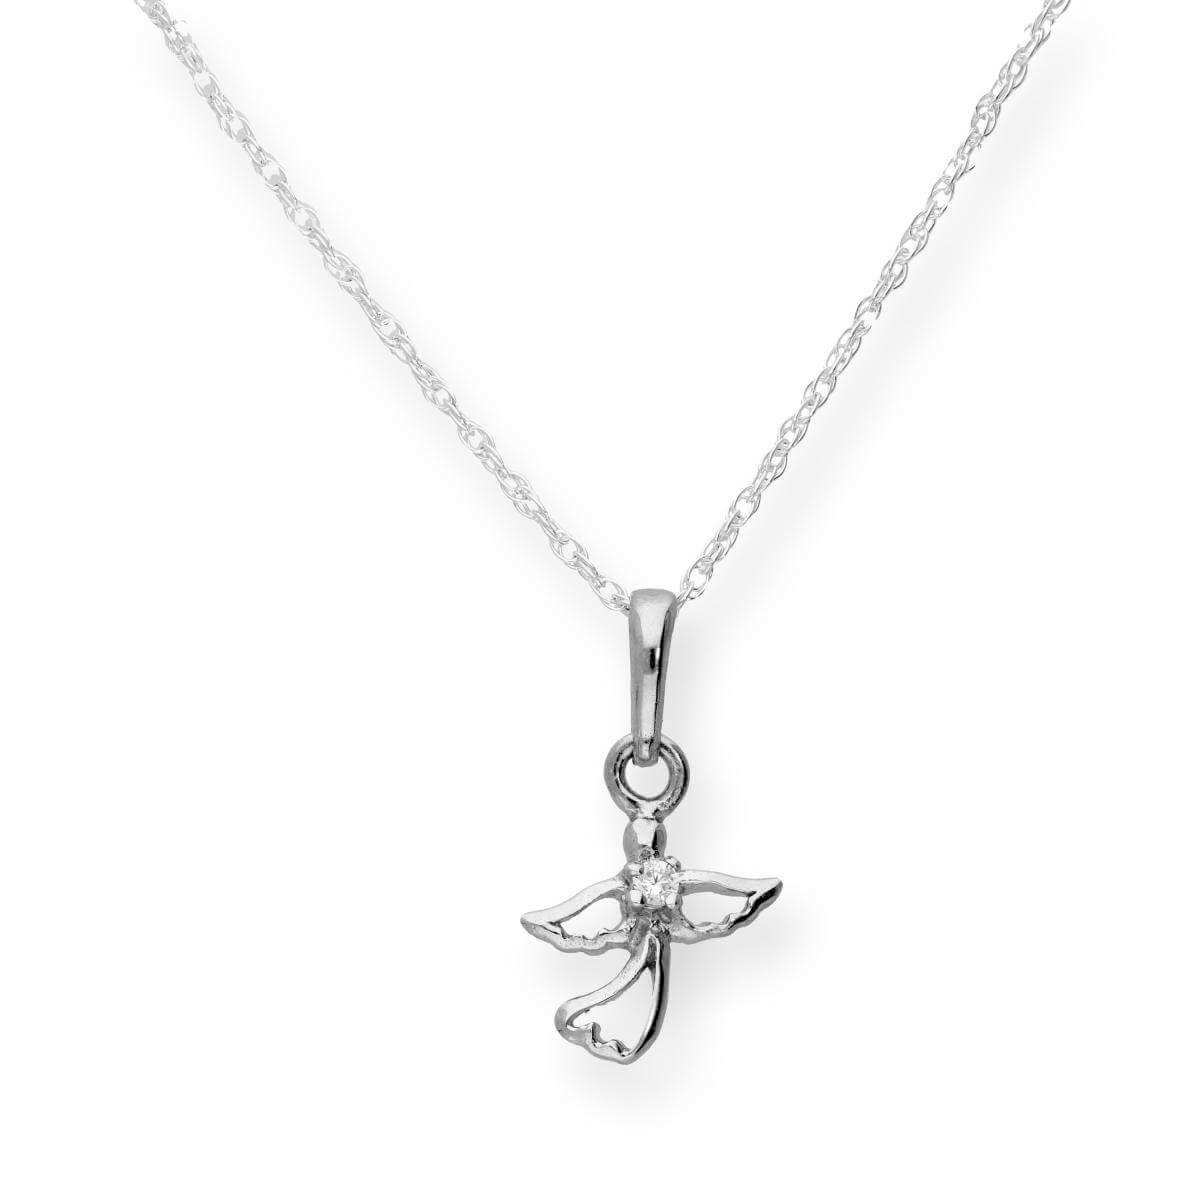 Sterling Silver & Clear CZ Crystal Cut Out Angel Pendant on Chain 16 - 22 Inches